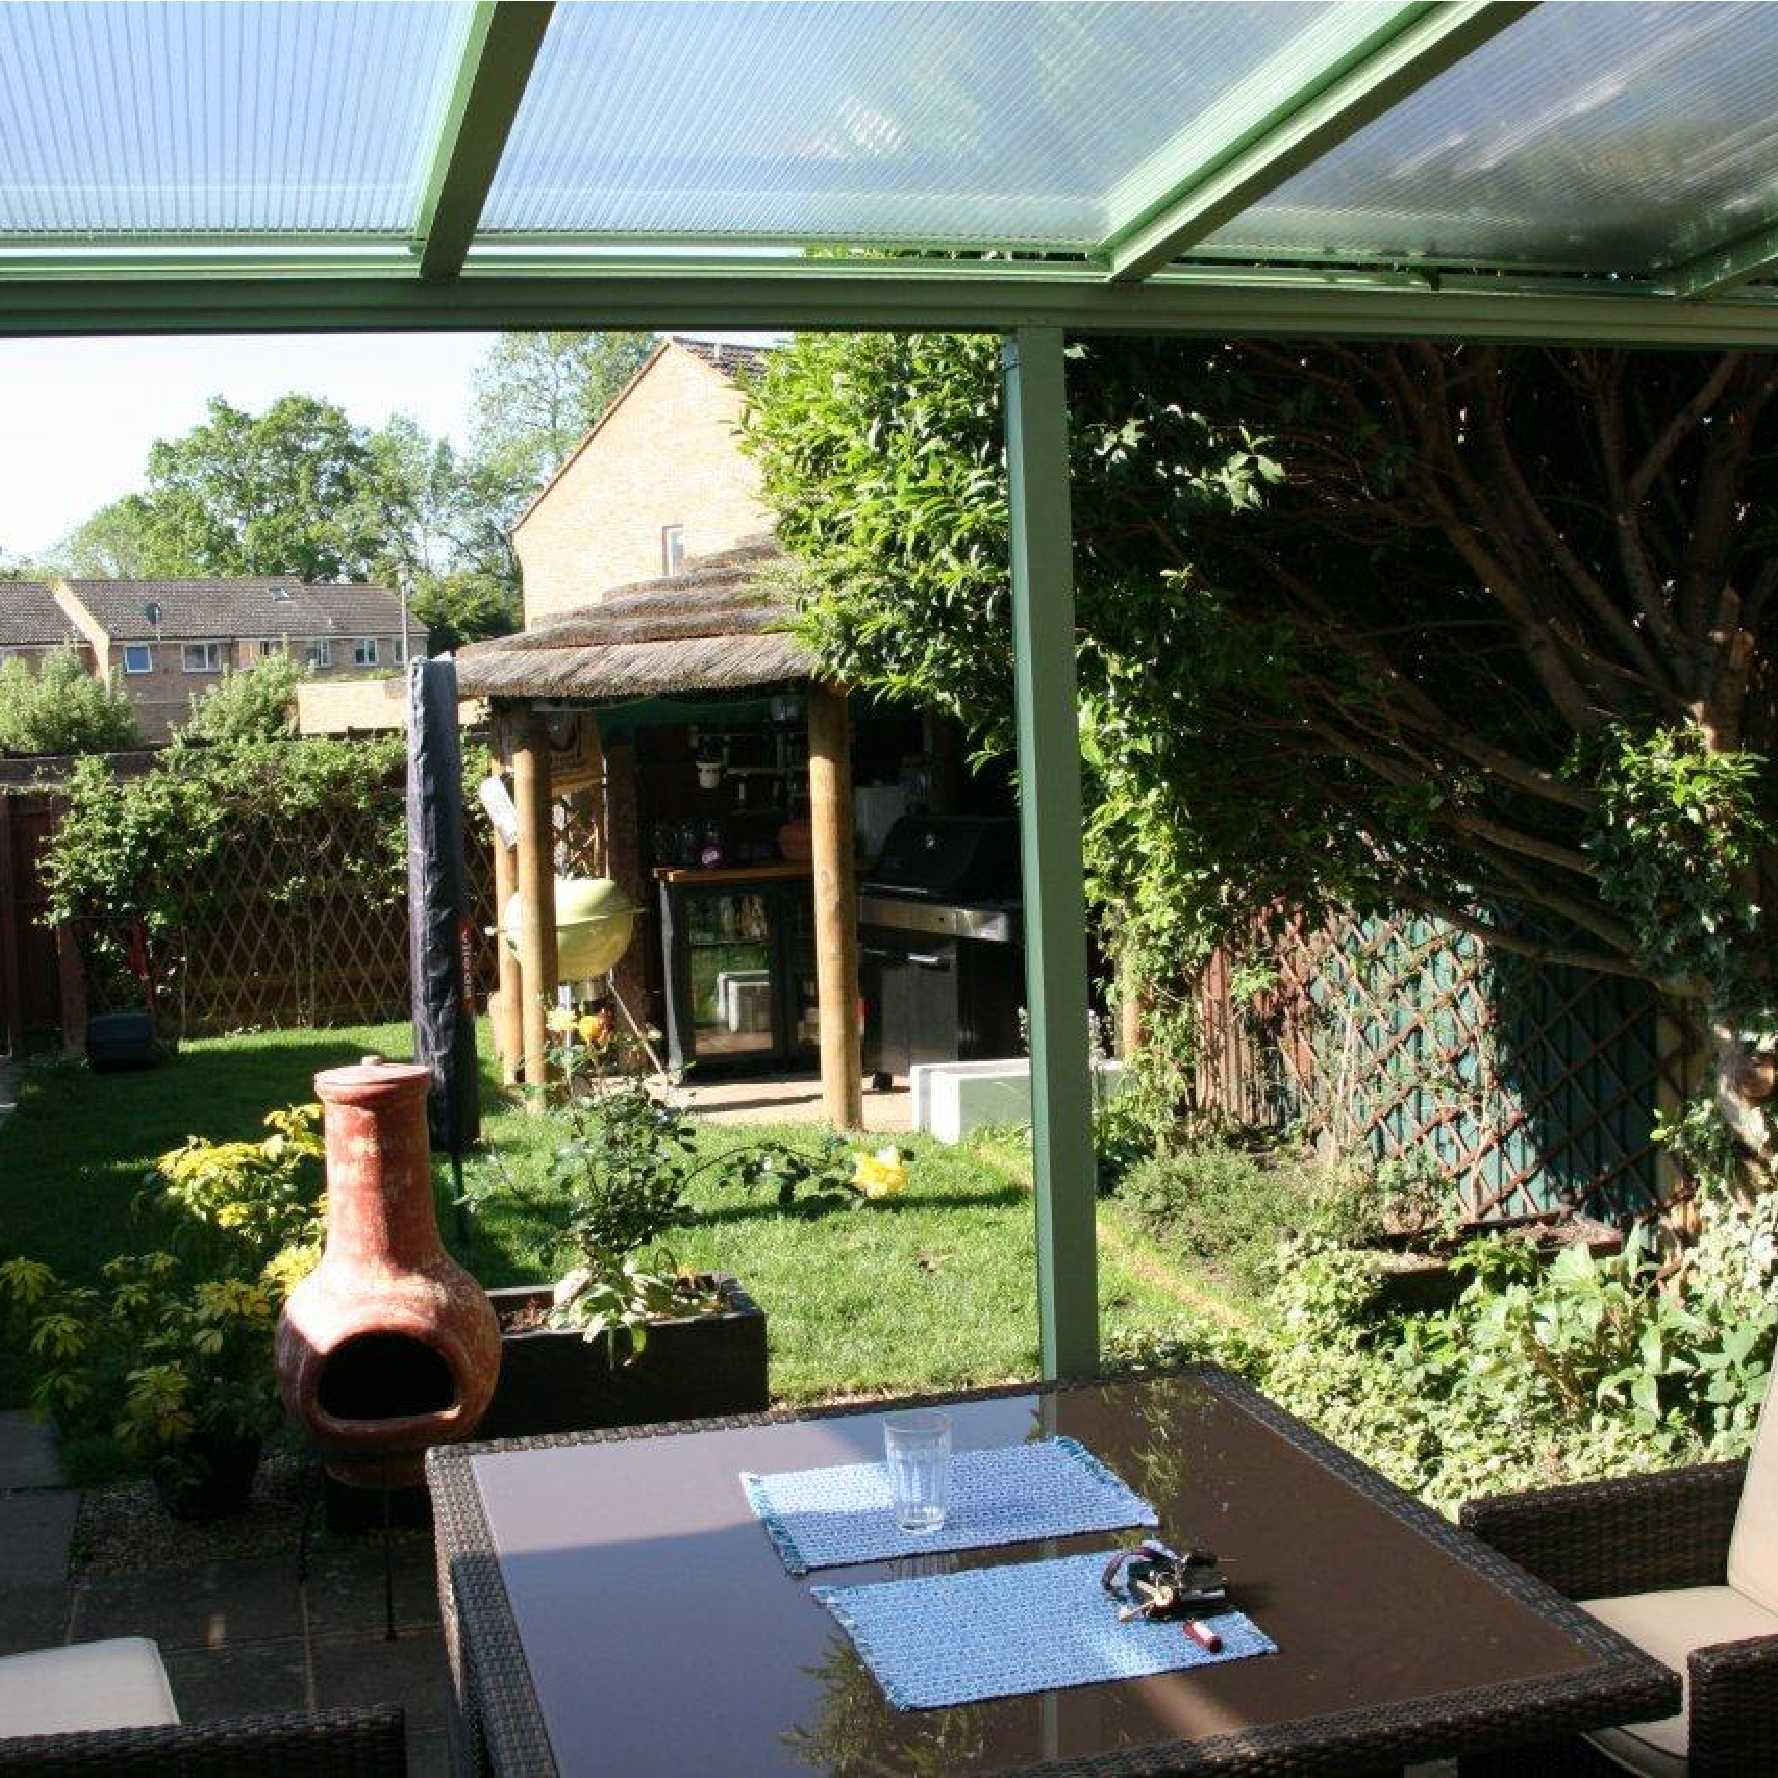 Affordable Omega Smart Lean-To Canopy with 16mm Polycarbonate Glazing - 6.3m (W) x 4.0m (P), (4) Supporting Posts